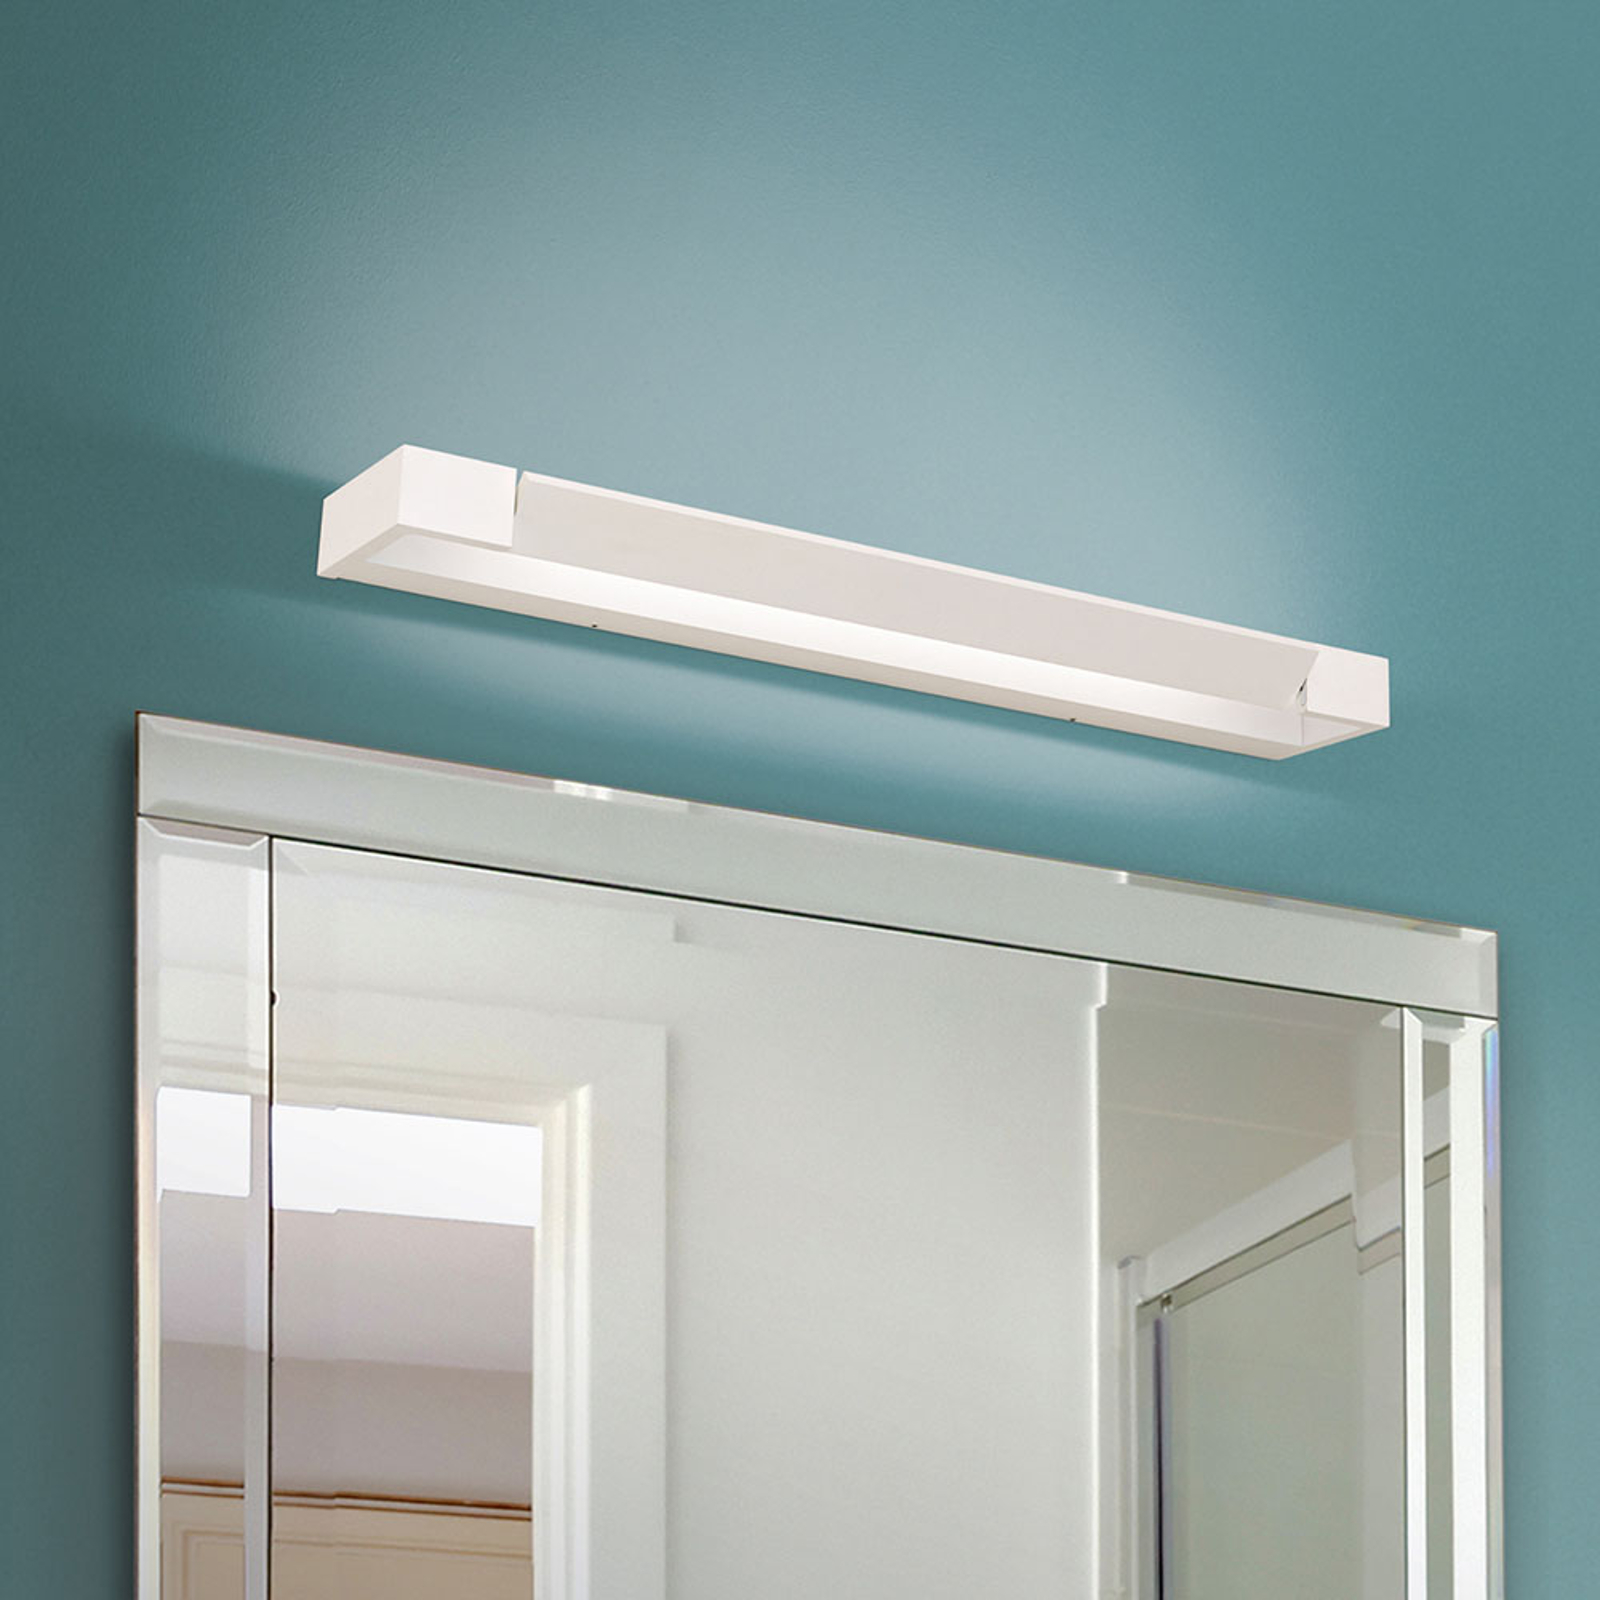 Applique miroir LED Marilyn blanc inclinable 60 cm